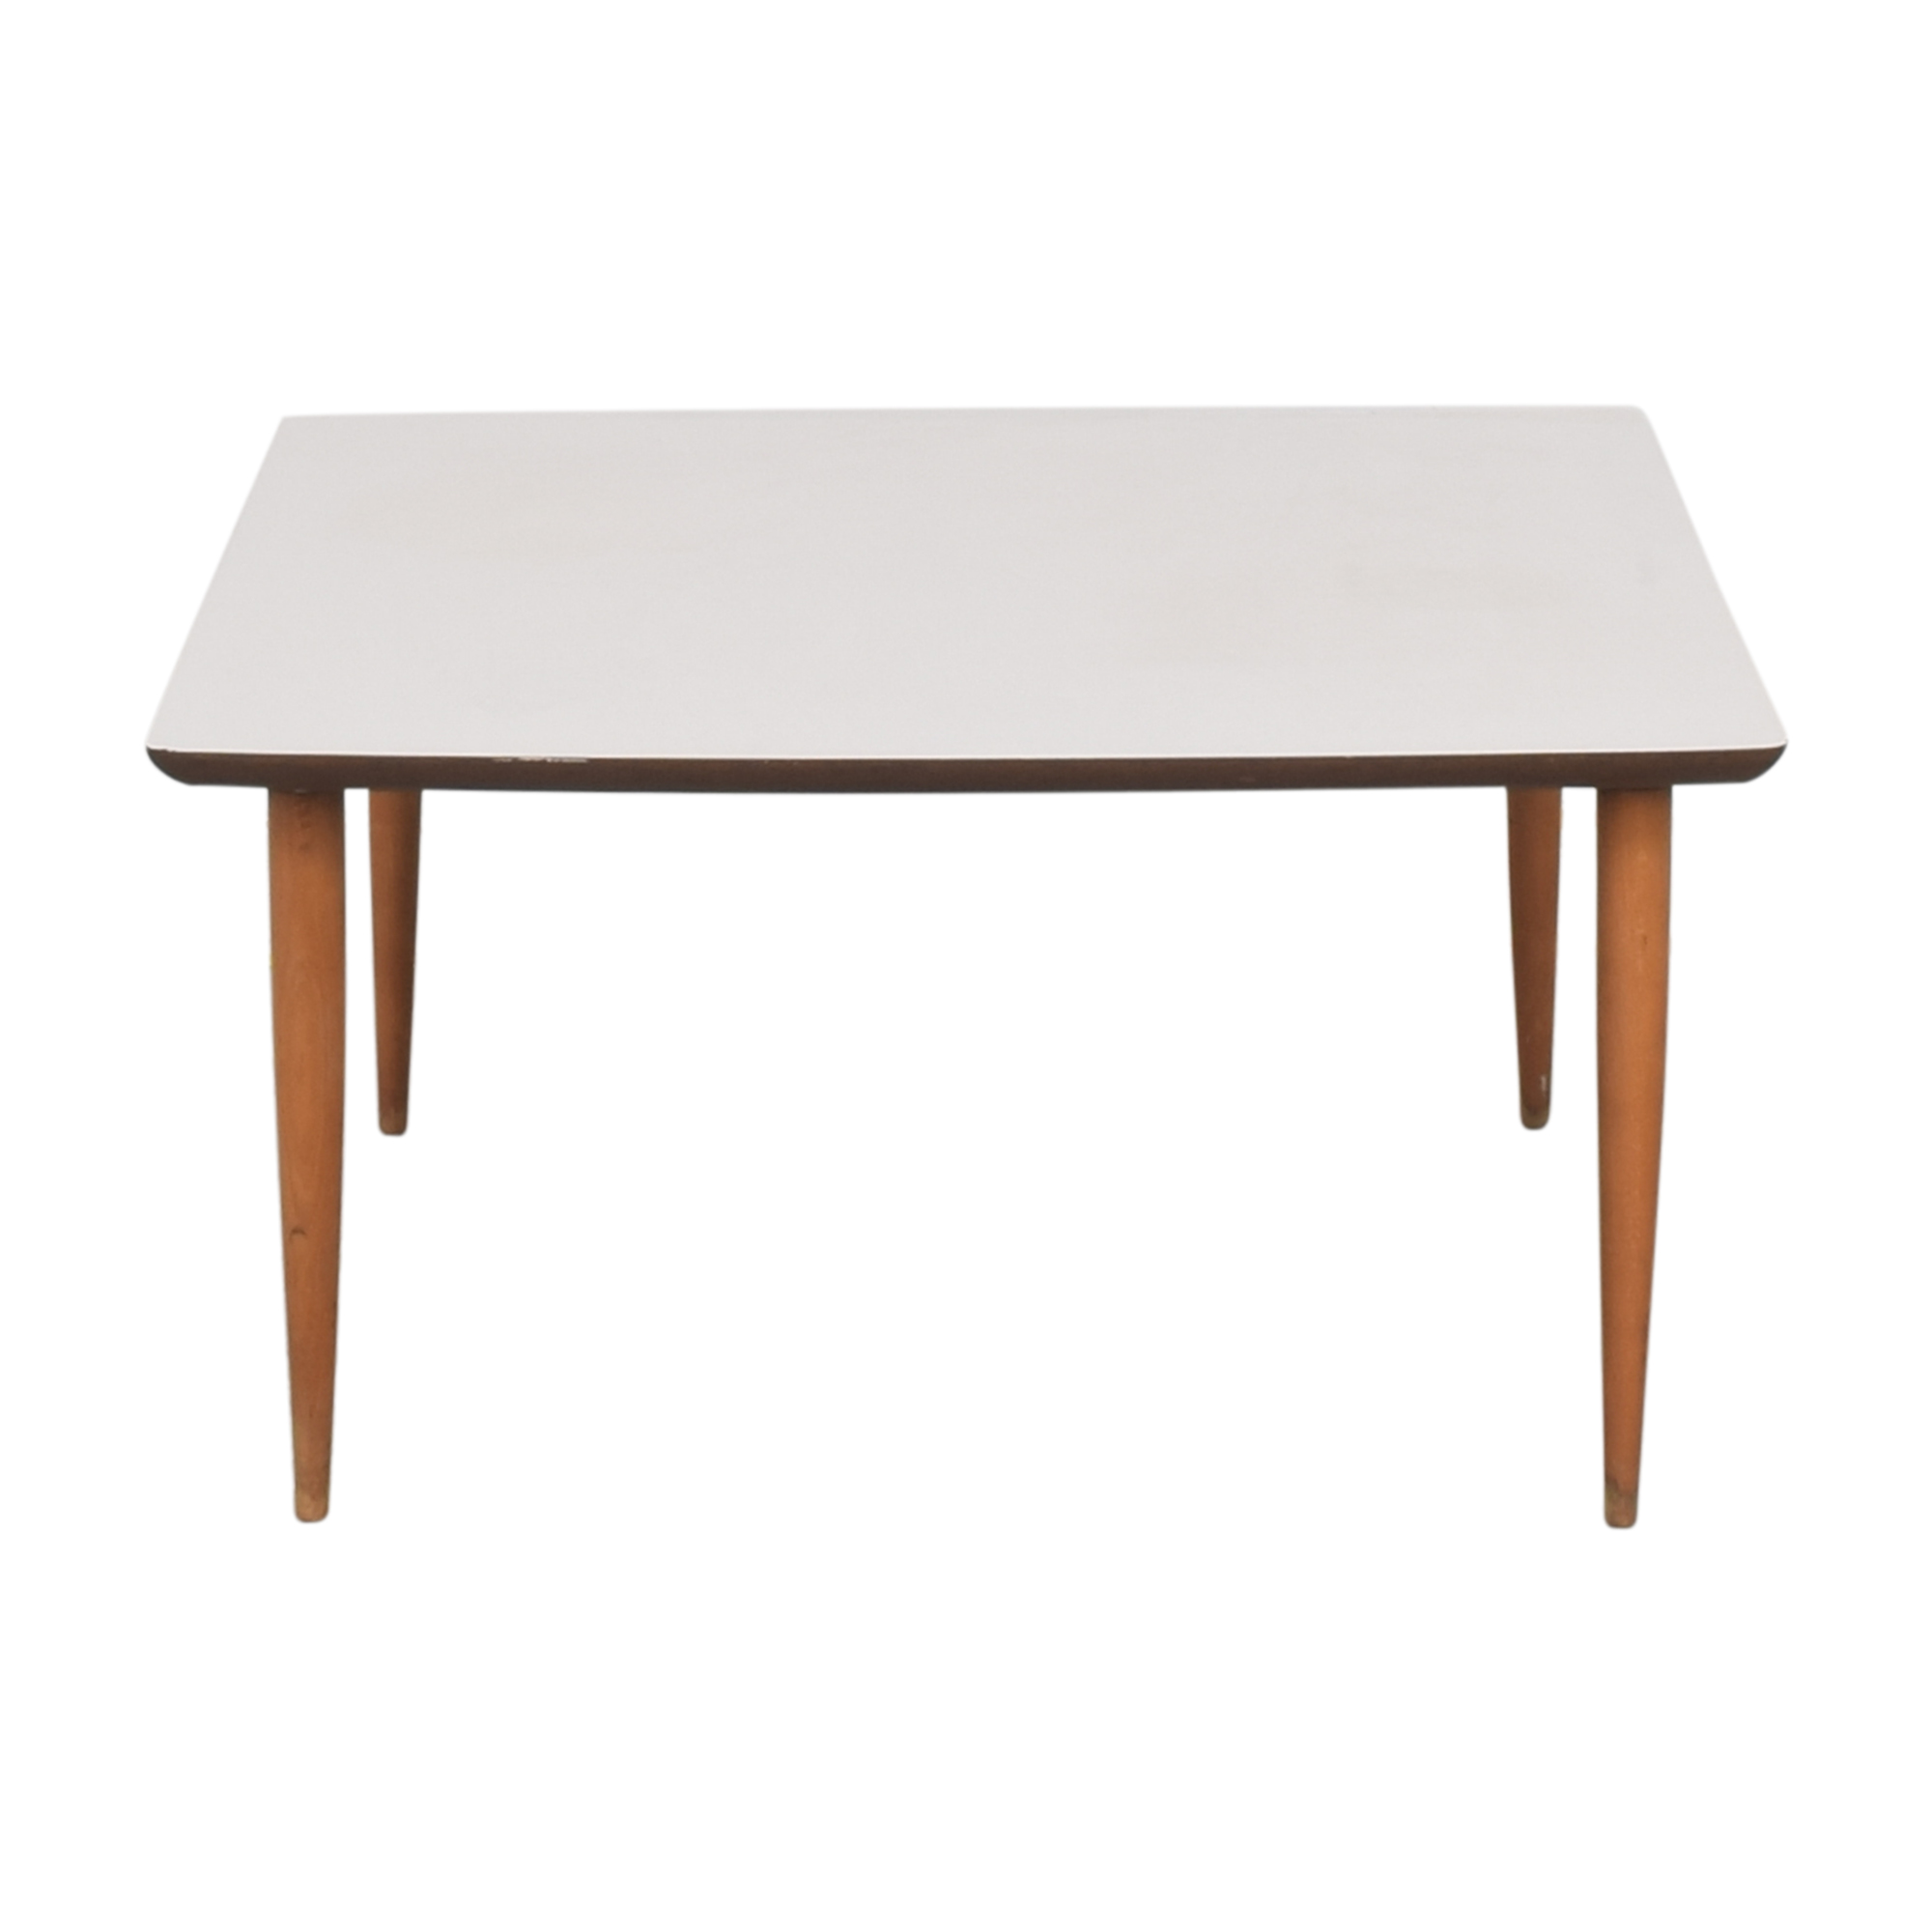 49 off modern square coffee table tables